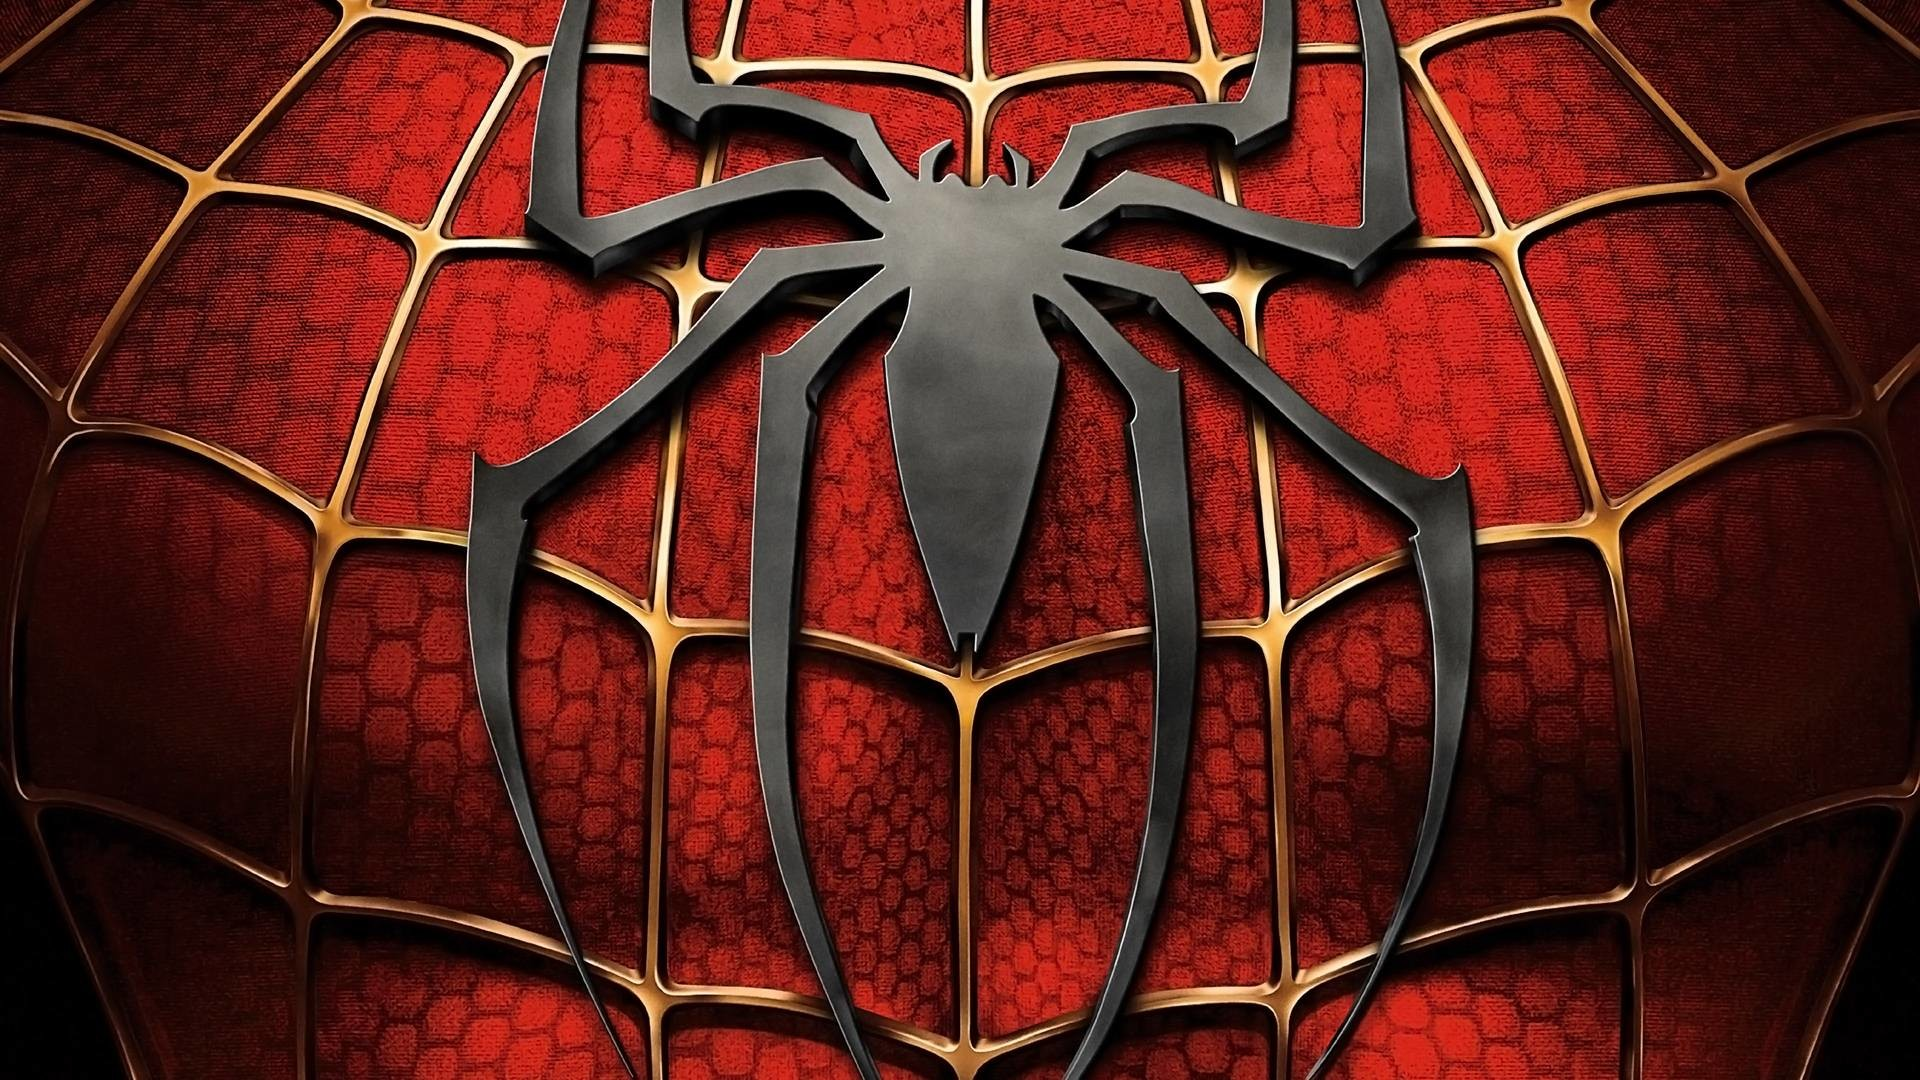 The Amazing Spider Man Wallpaper For Iphone Spiderman Hd Wallpapers 73 Images